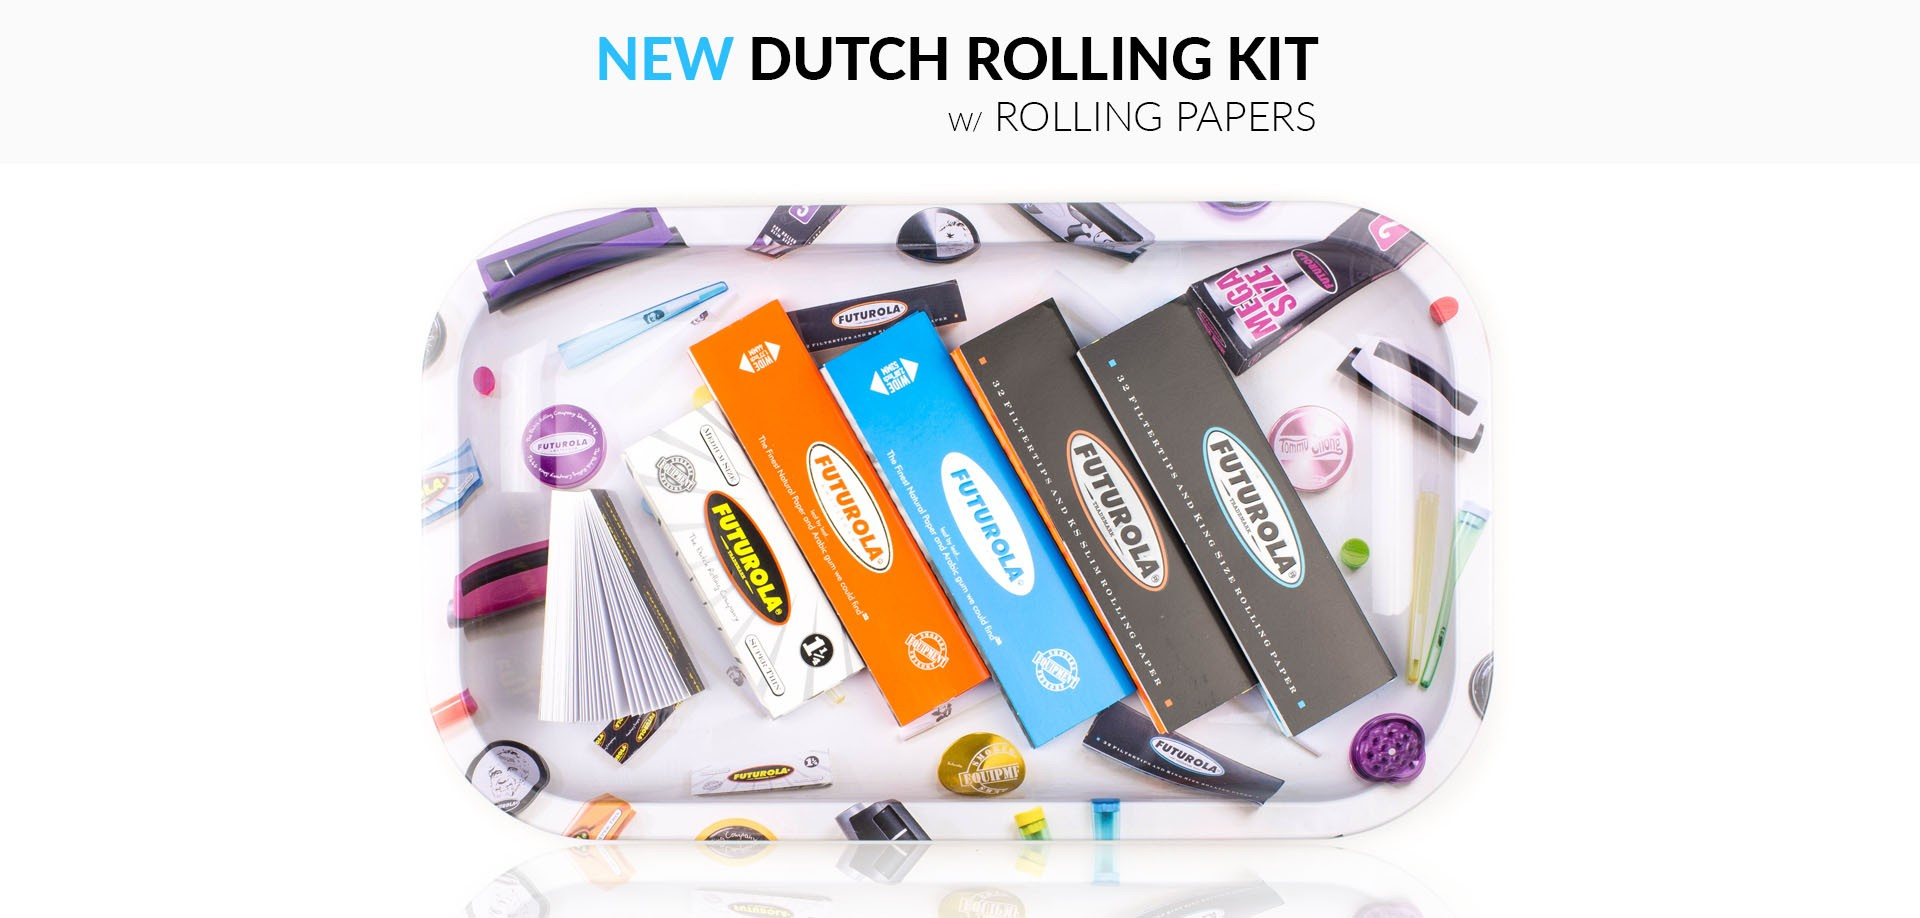 DUTCH ROLLING KIT W/ ROLLING PAPERS